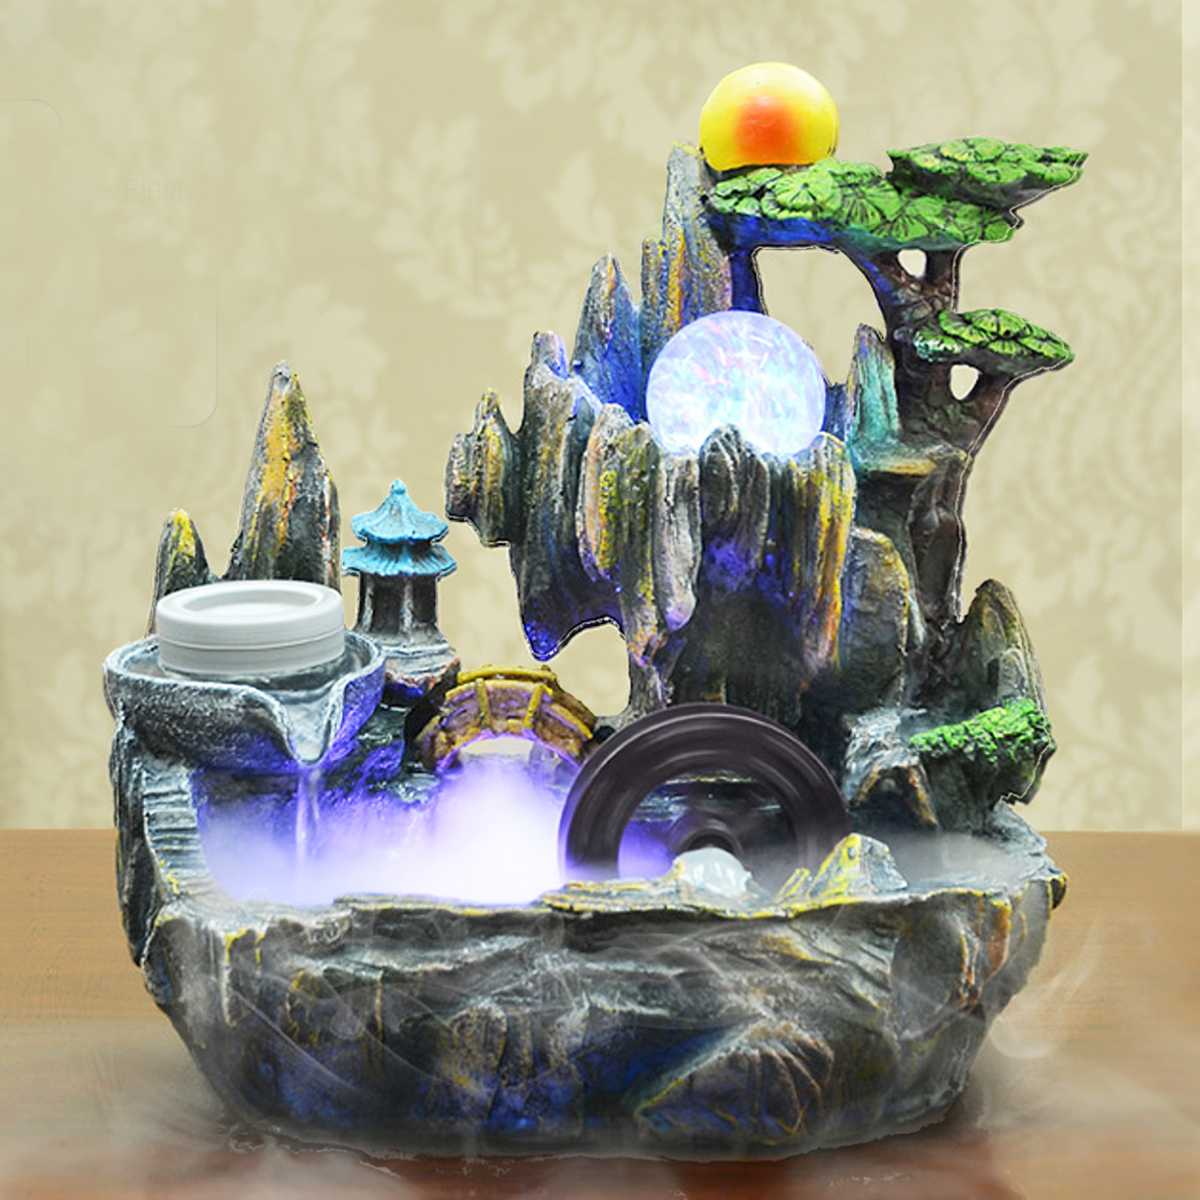 220V Home Ornament table Water Fountain Feng Shui Decoration Ornament Artificial Aromatherapy Indoor Air Humidifier Home Decor